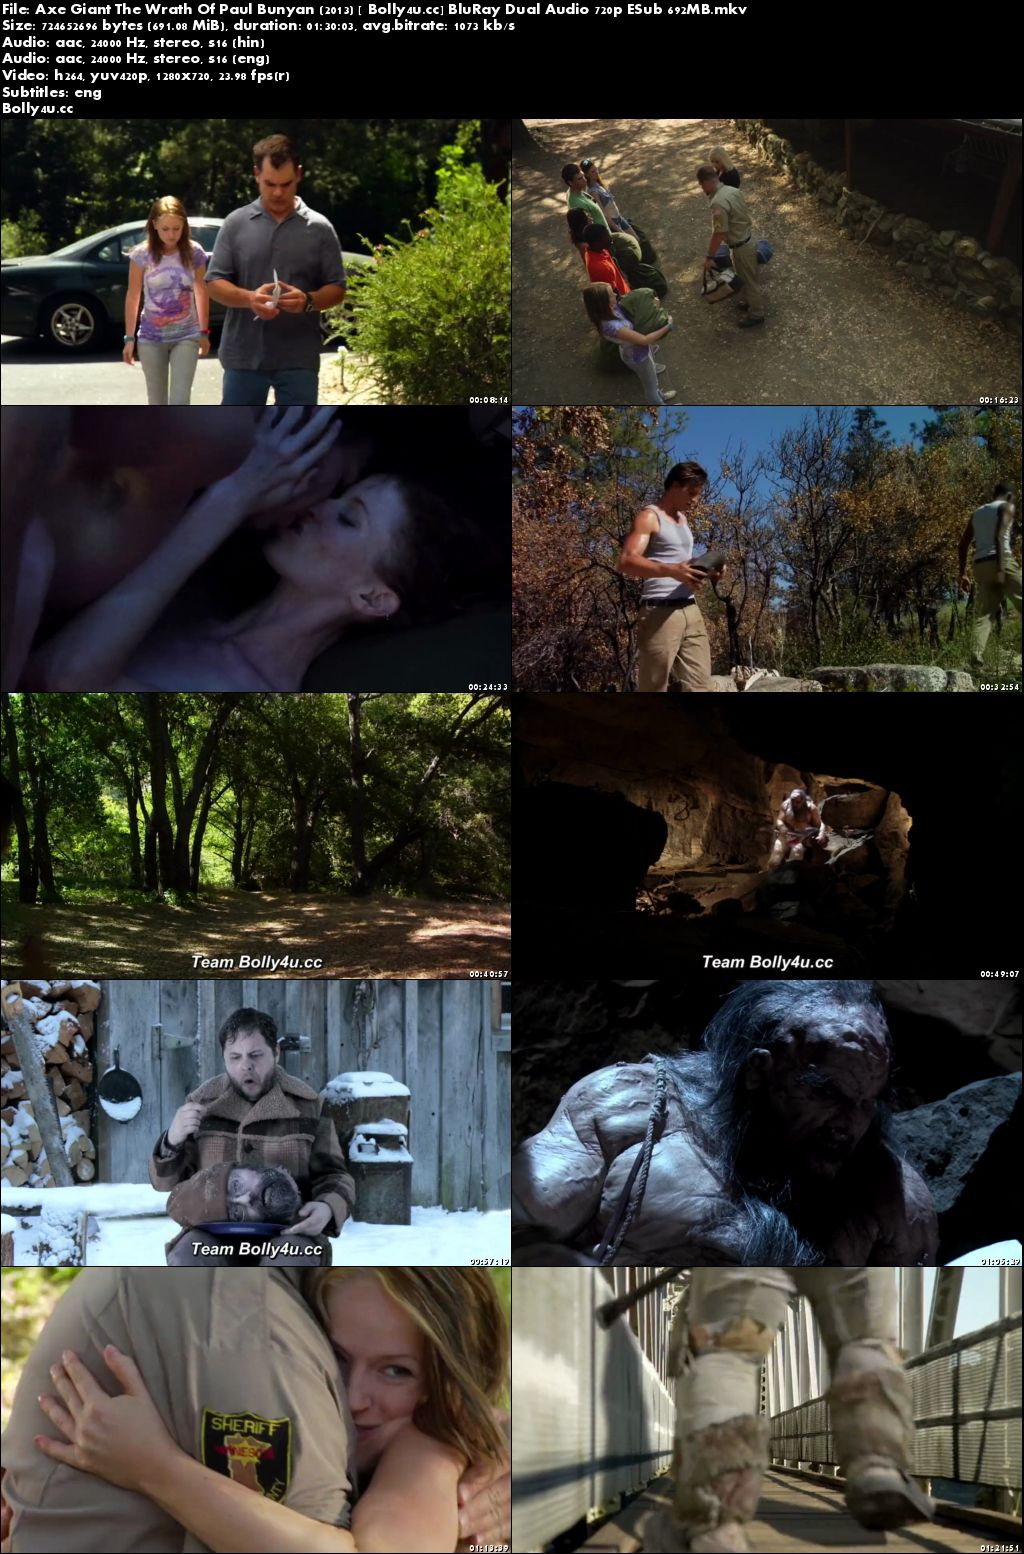 Axe Giant The Wrath Of Paul Bunyan 2013 BRRip 300MB Hindi Dual Audio 480p Download